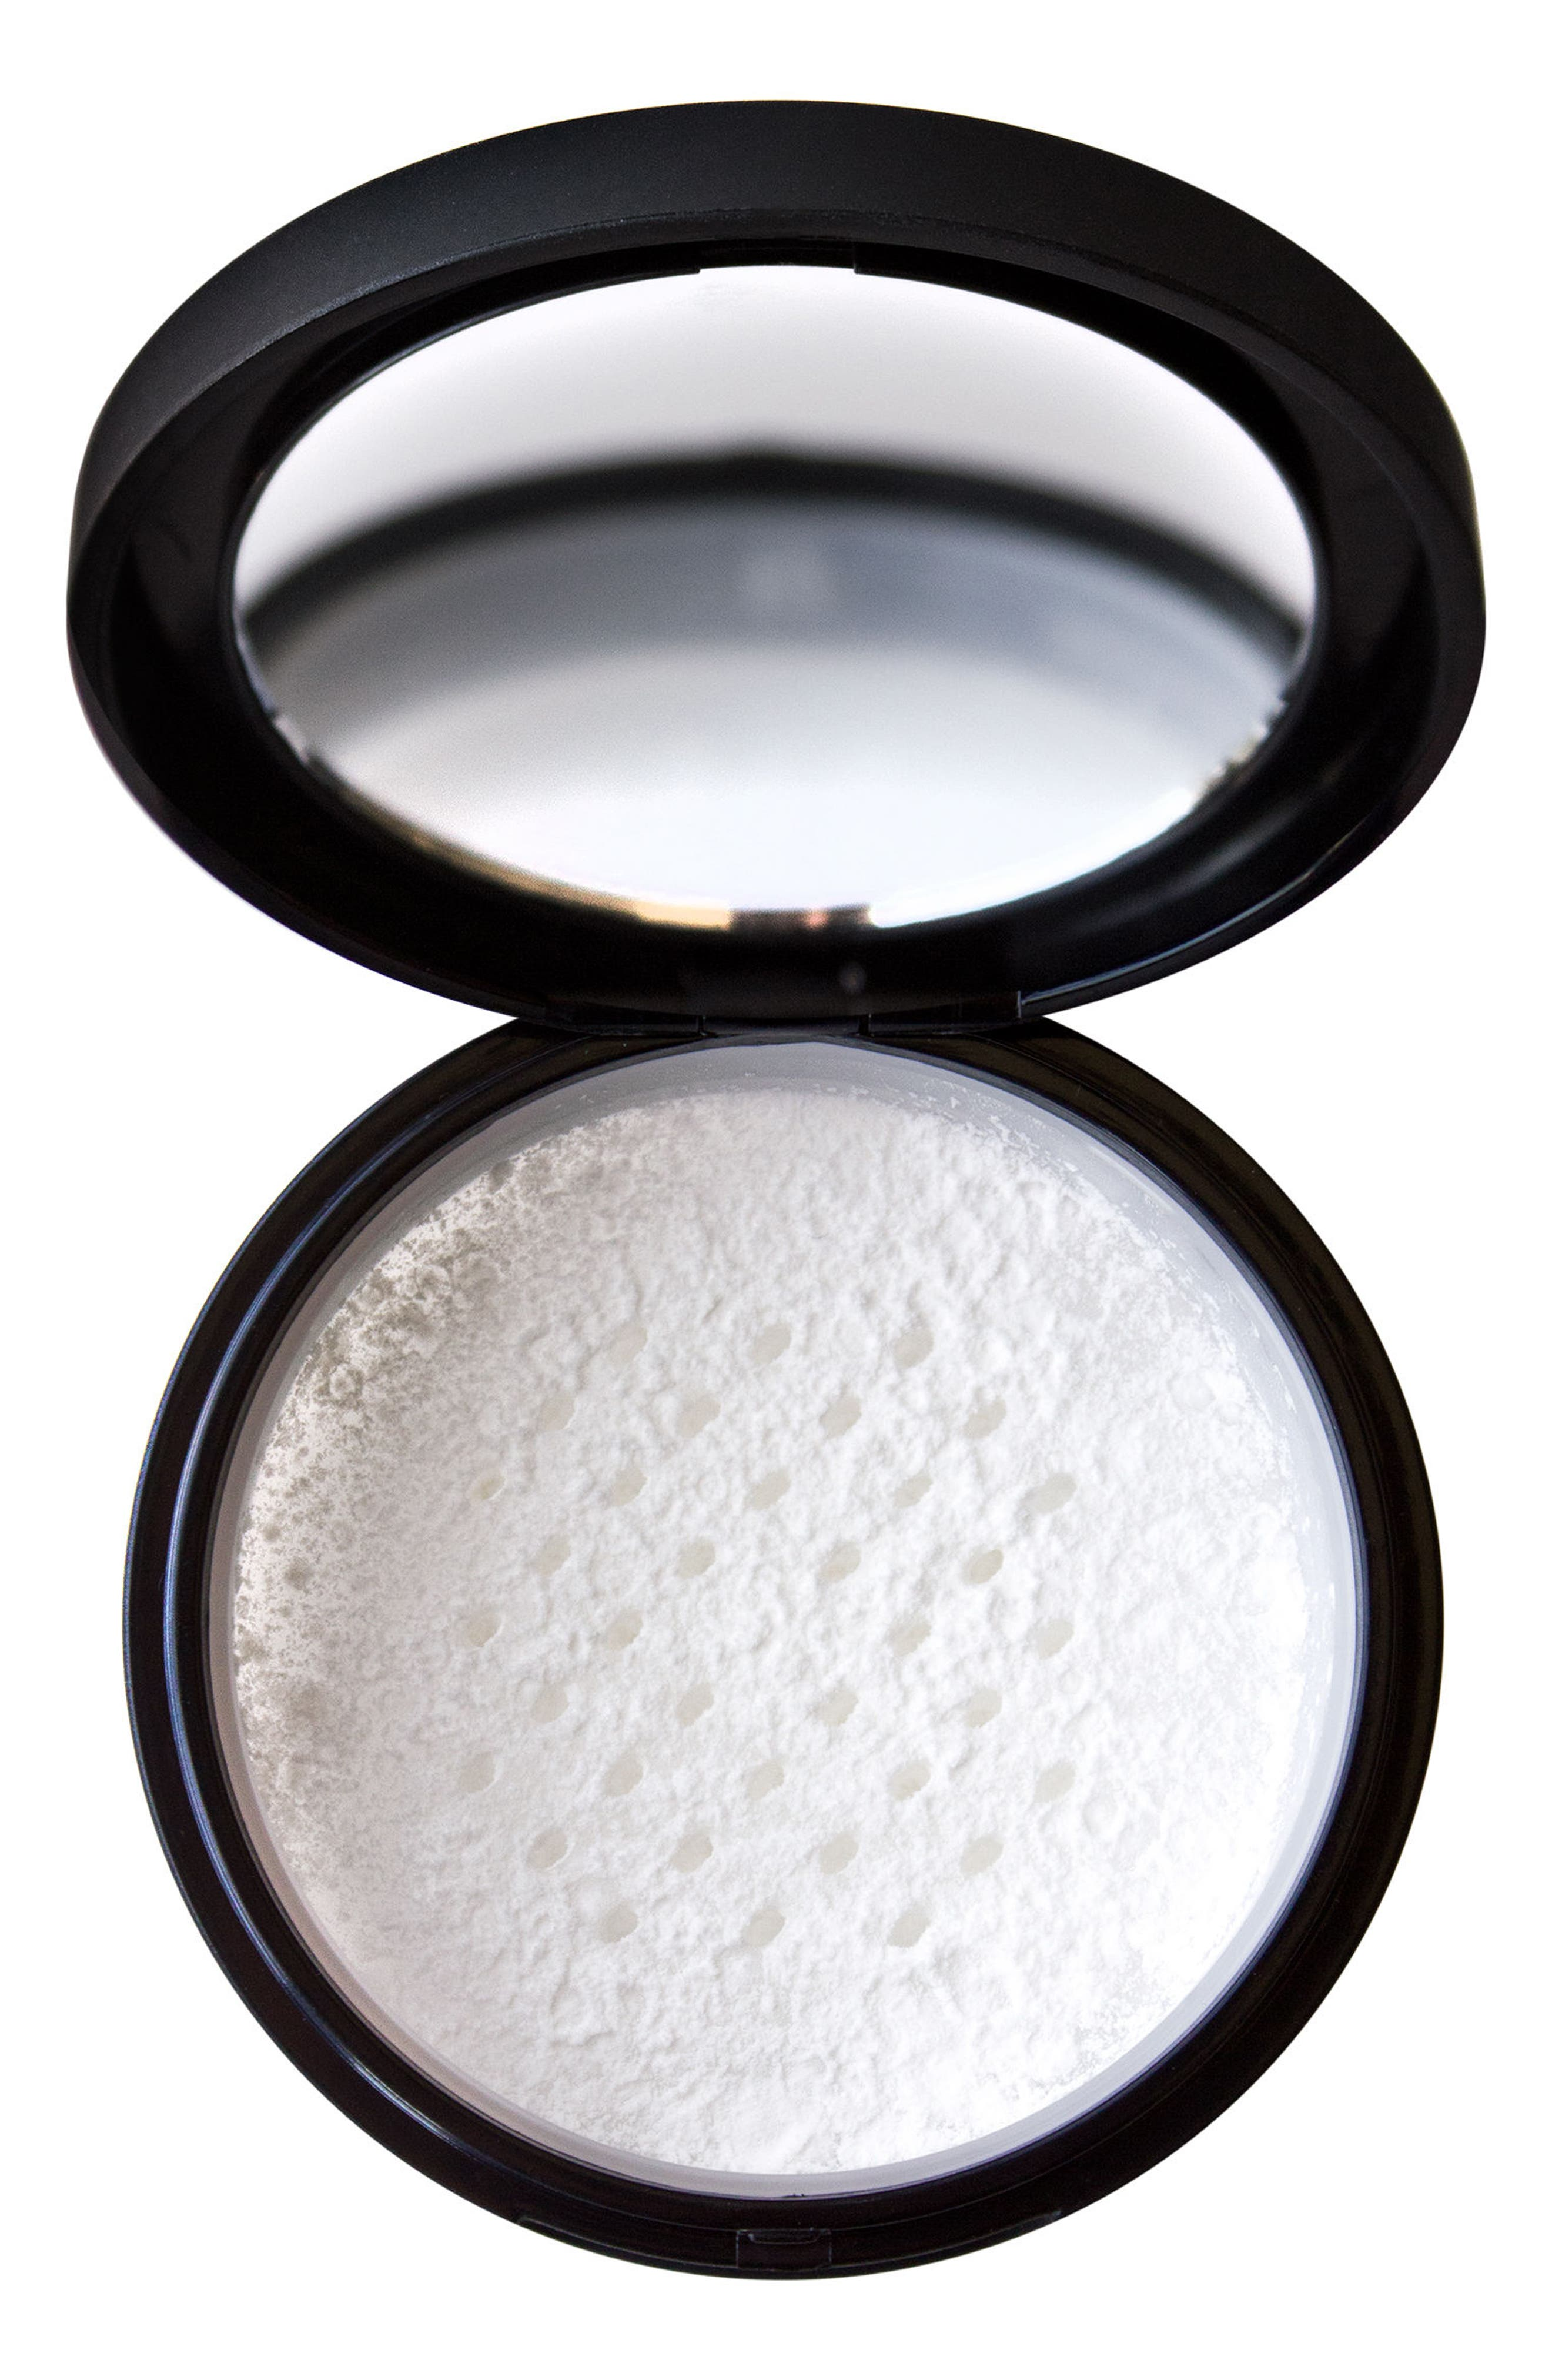 PRO Blurring Translucent Loose Powder,                         Main,                         color, No Color